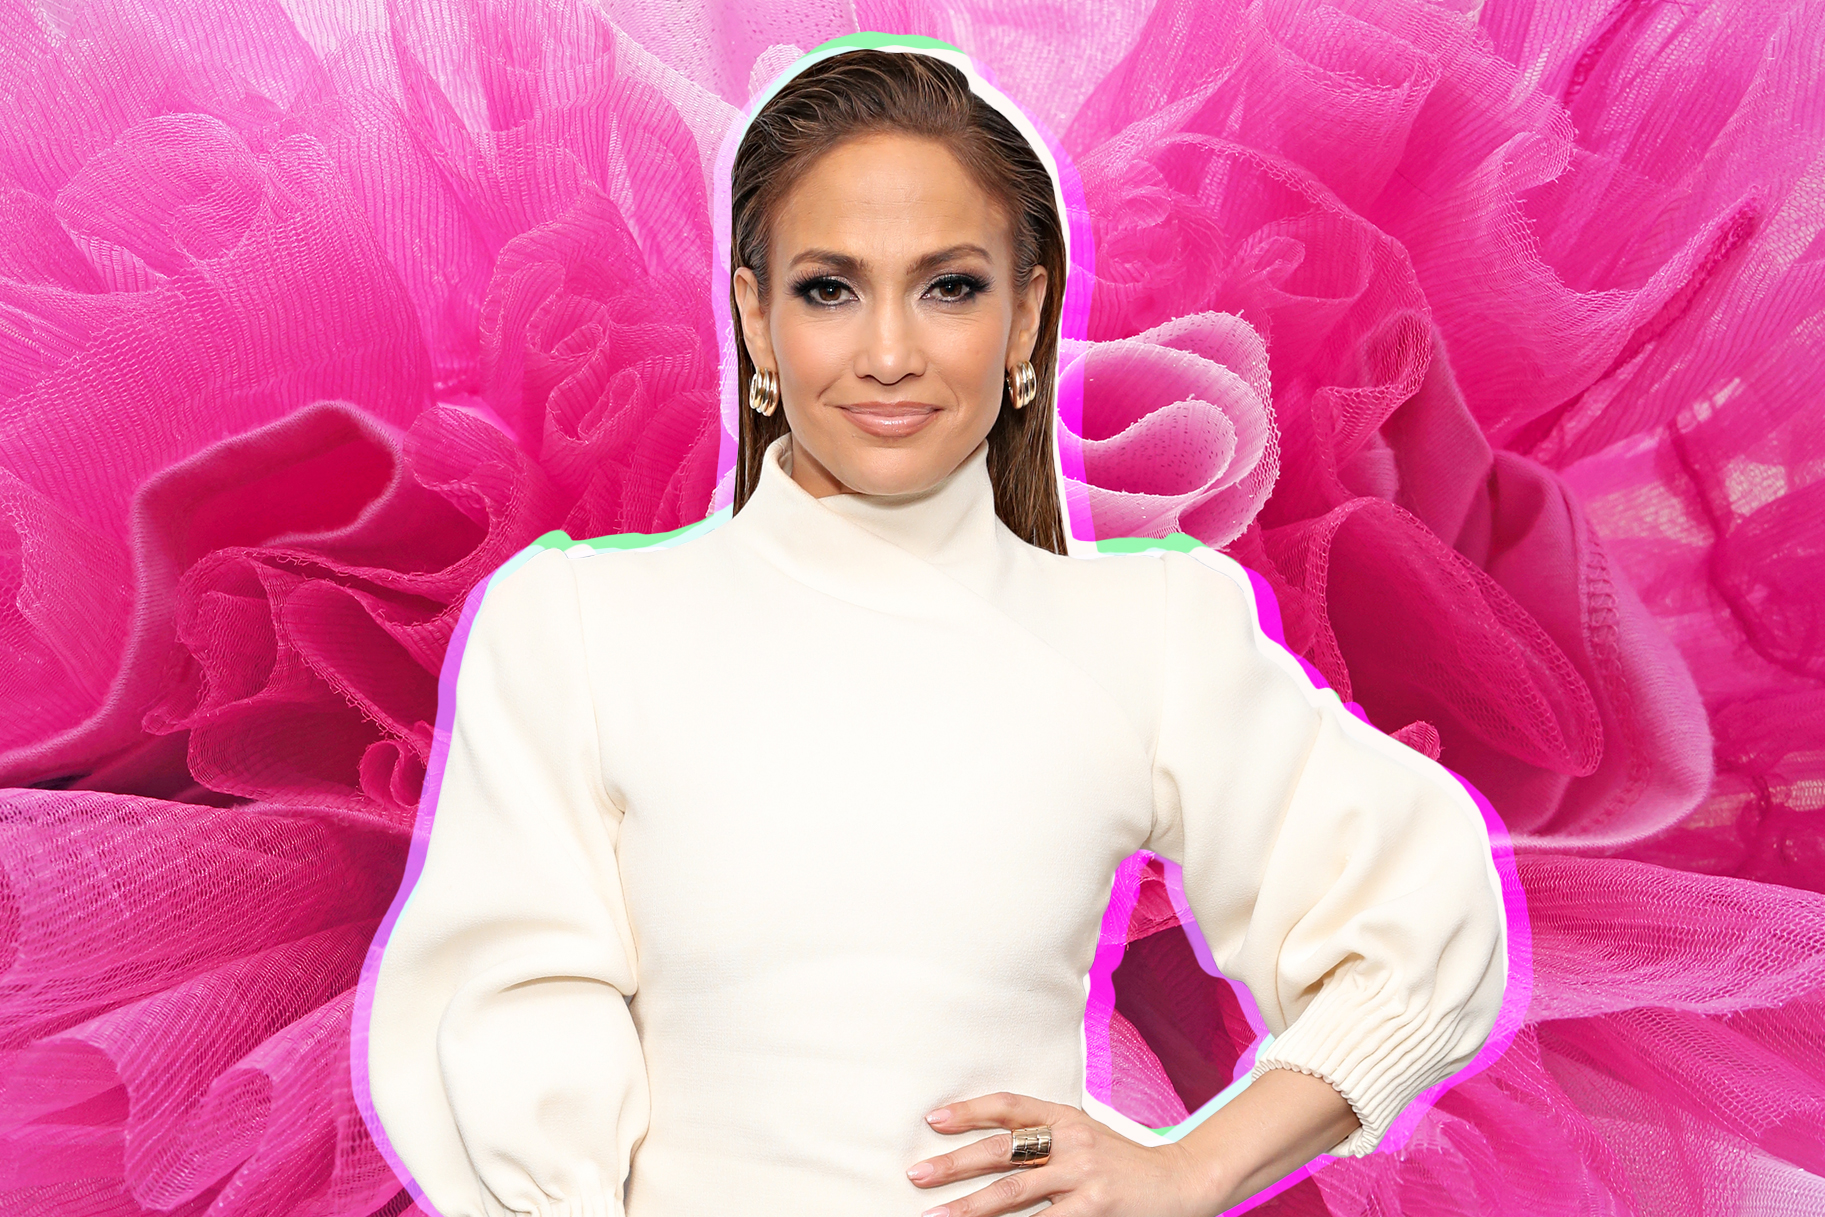 96668857bdc Jennifer Lopez Could Barely Fit Her Gigantic Hot Pink Tulle Ballgown on a  Bus